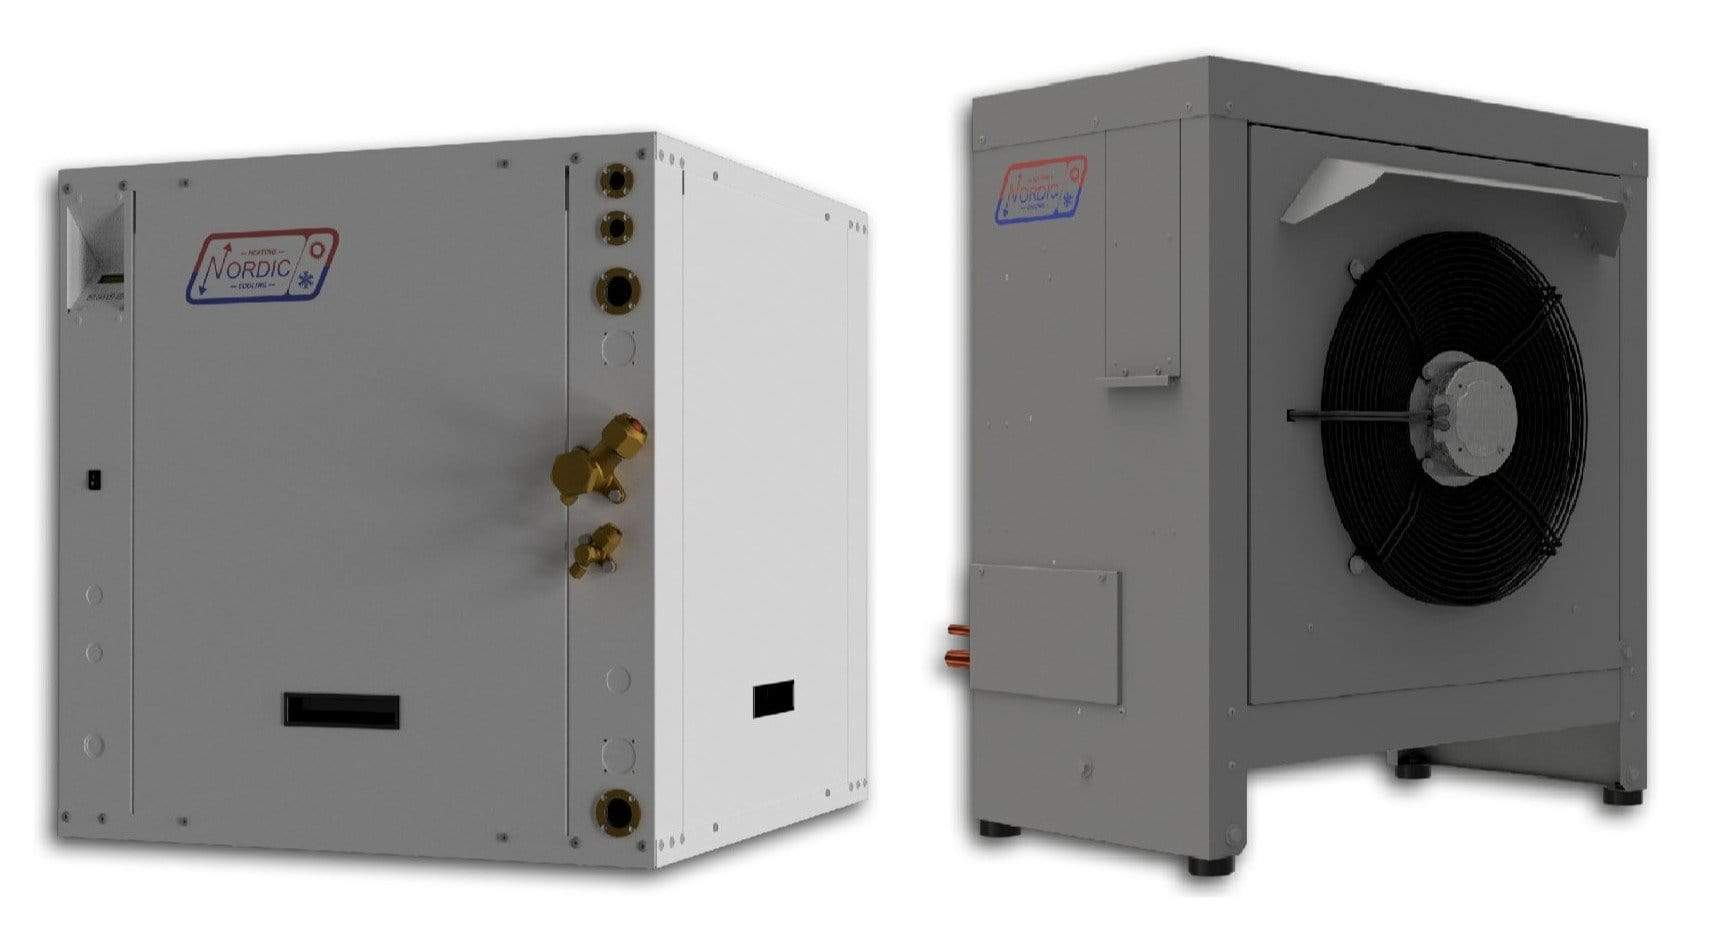 ATW-25 Air to Water Heat Pump - Nordic ATW25 - Split Type - 2 Tons Nominal Cooling Capacity